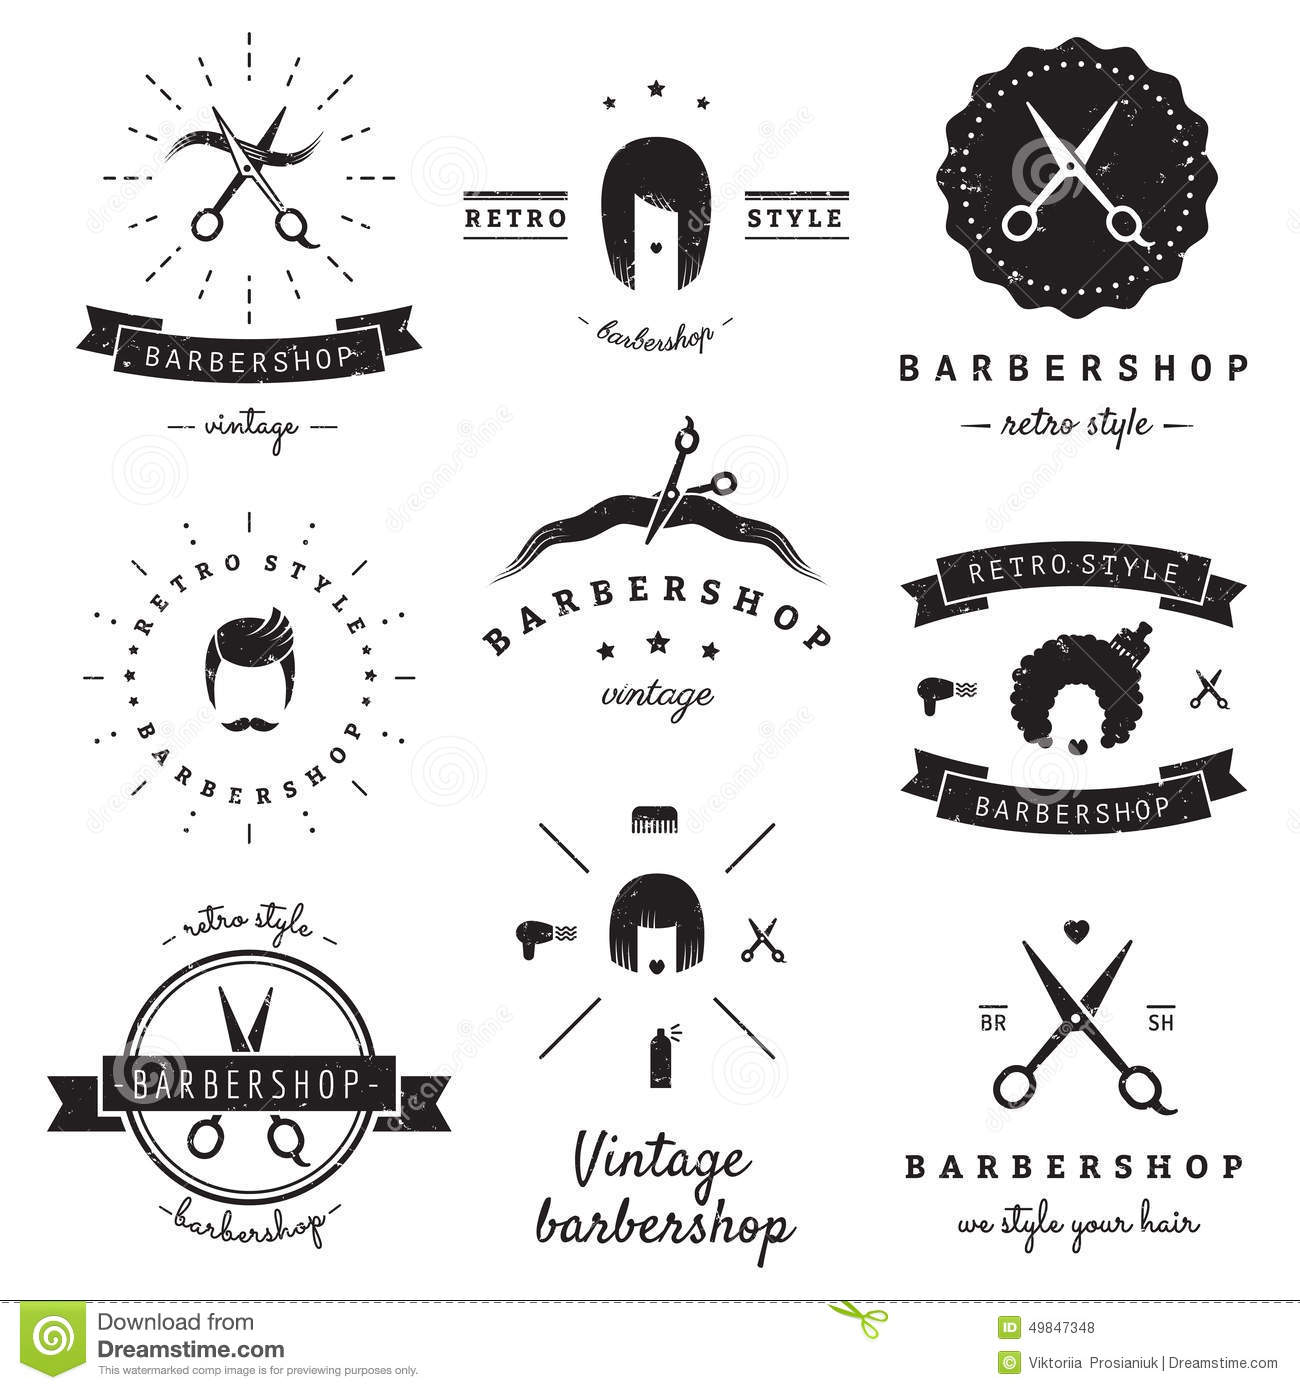 Download Barbershop Hair Salon Logo Vintage Vector Set Hipster And Retro Style